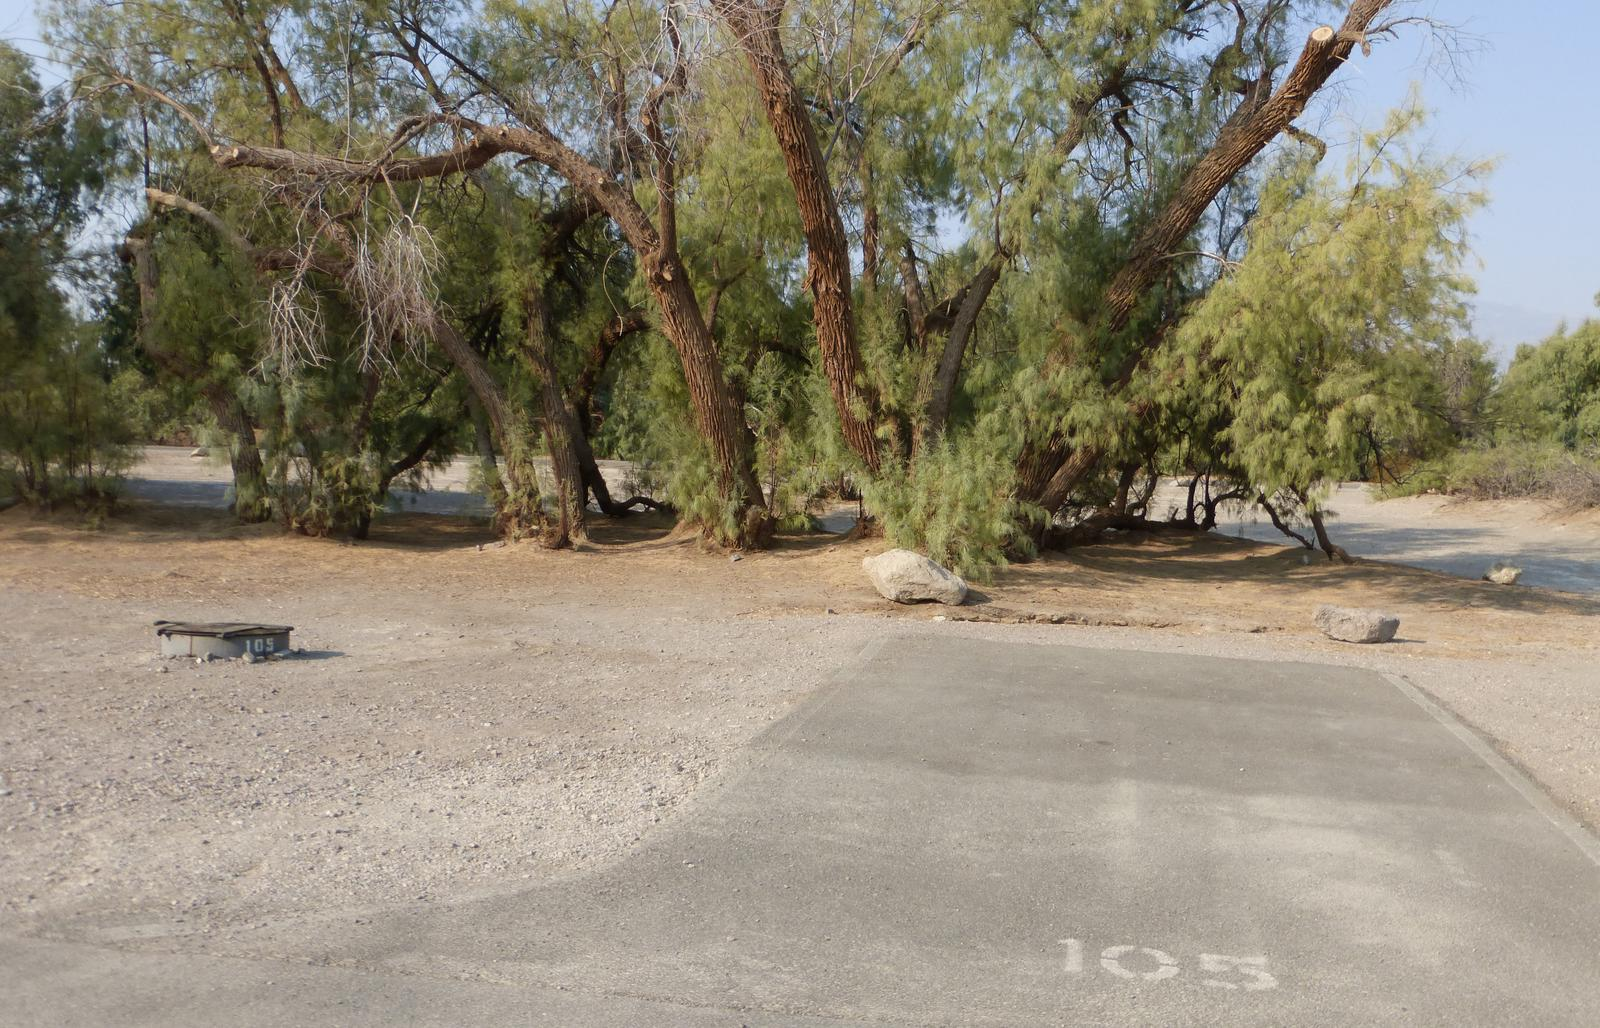 Furnace Creek Campground standard nonelectric tent only drive in site #105 with picnic table and fire ring.